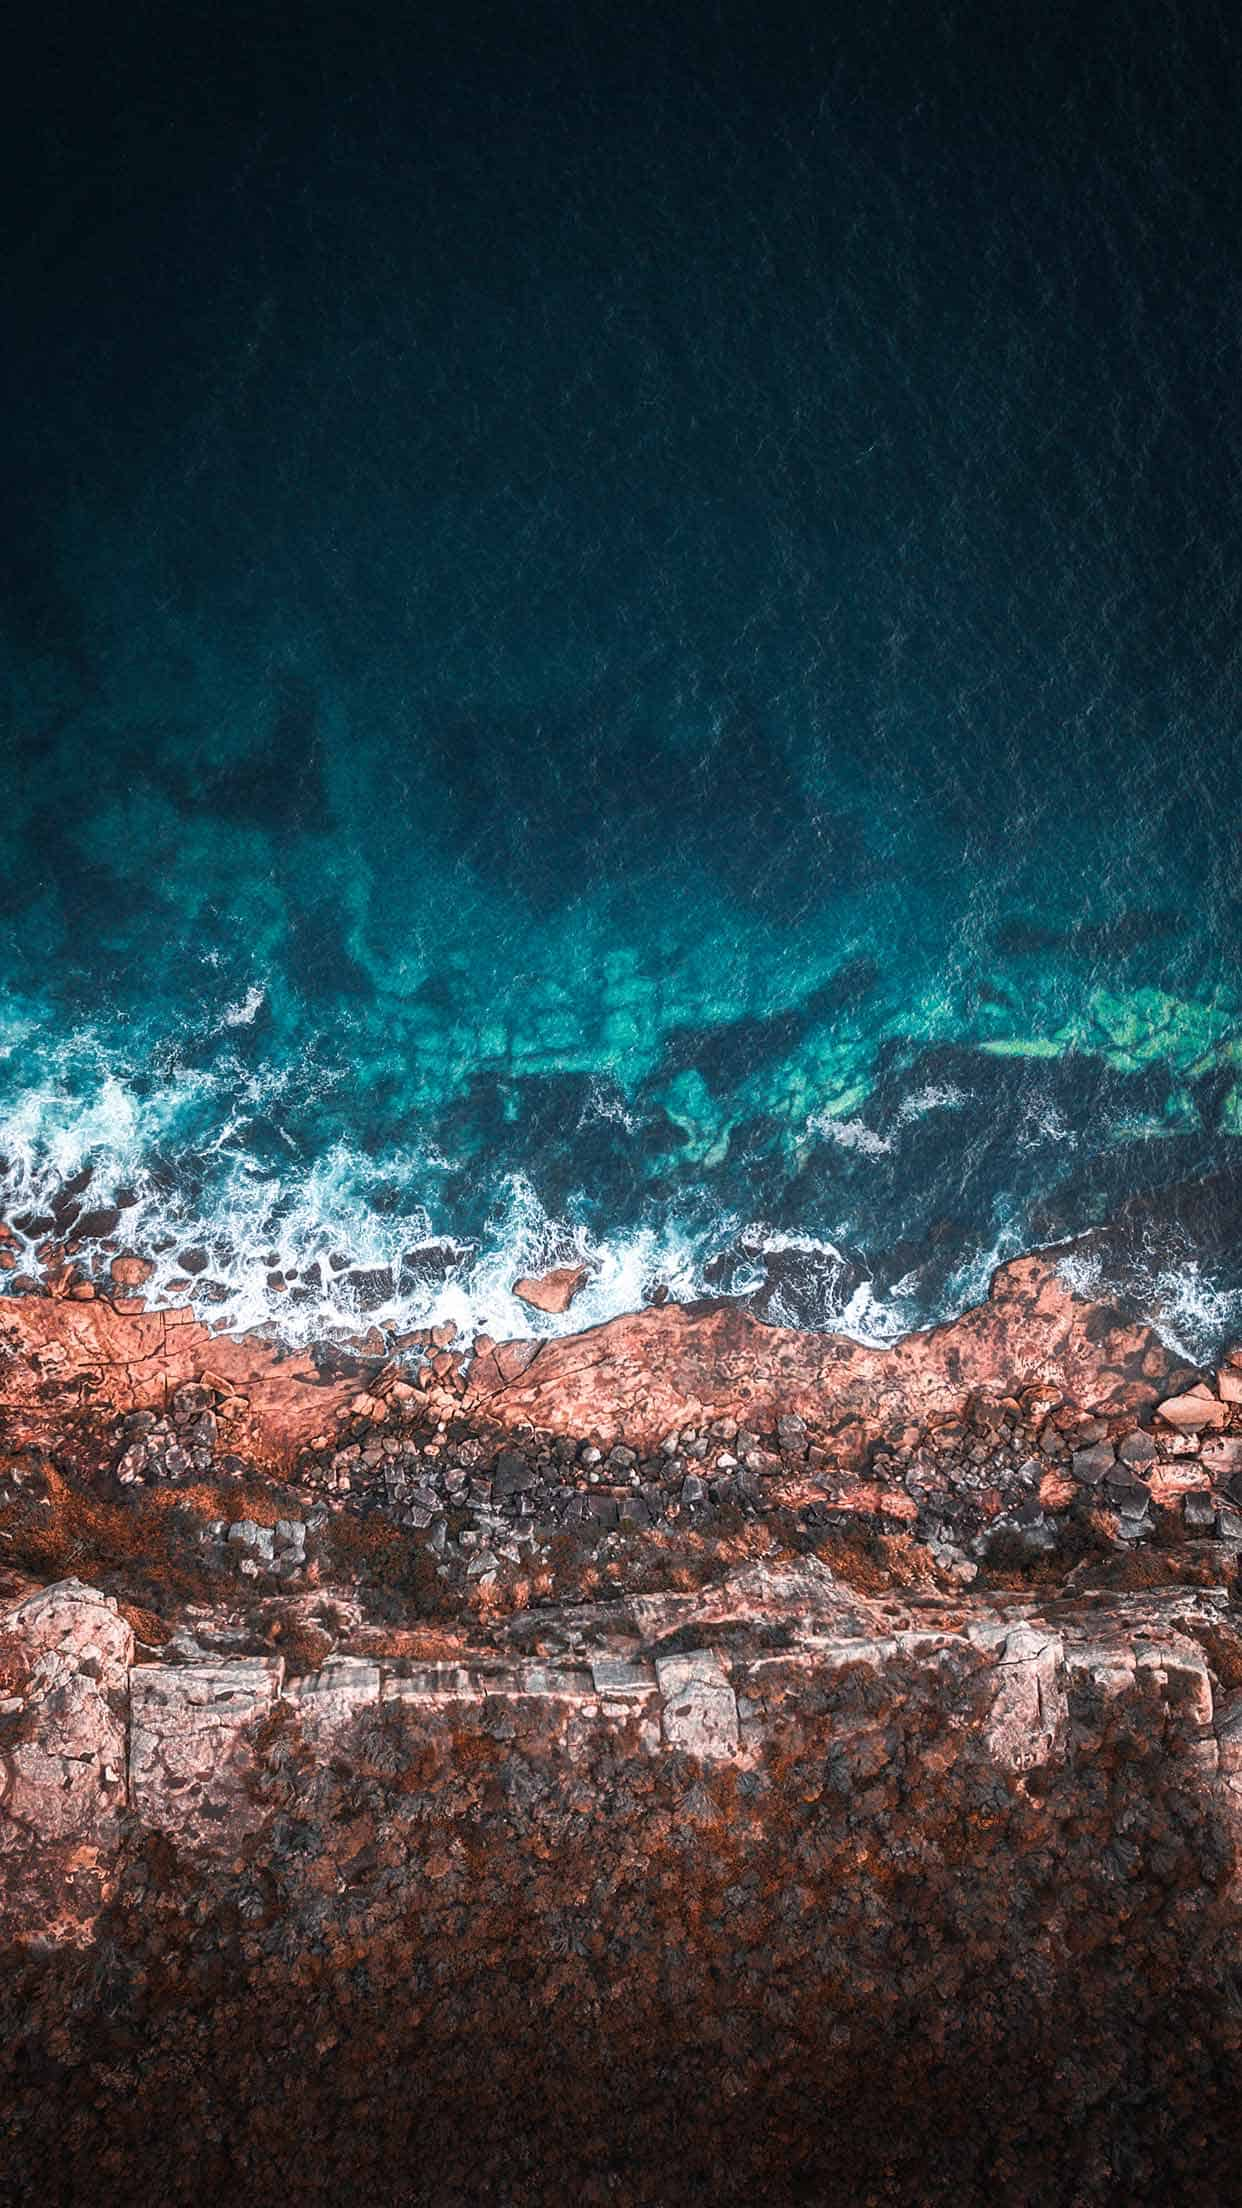 9 Best Ocean iPhone XS Wallpapers – Best Water Beach Sea Backgrounds. 9 Best Ocean iPhone XS Wallpapers - best blue sea water backgrounds for your inspiration - awesome nature, sun, the beach #iphone #wallpaper #background #sunset #beach #photography #nature #ocean #sea #samsung